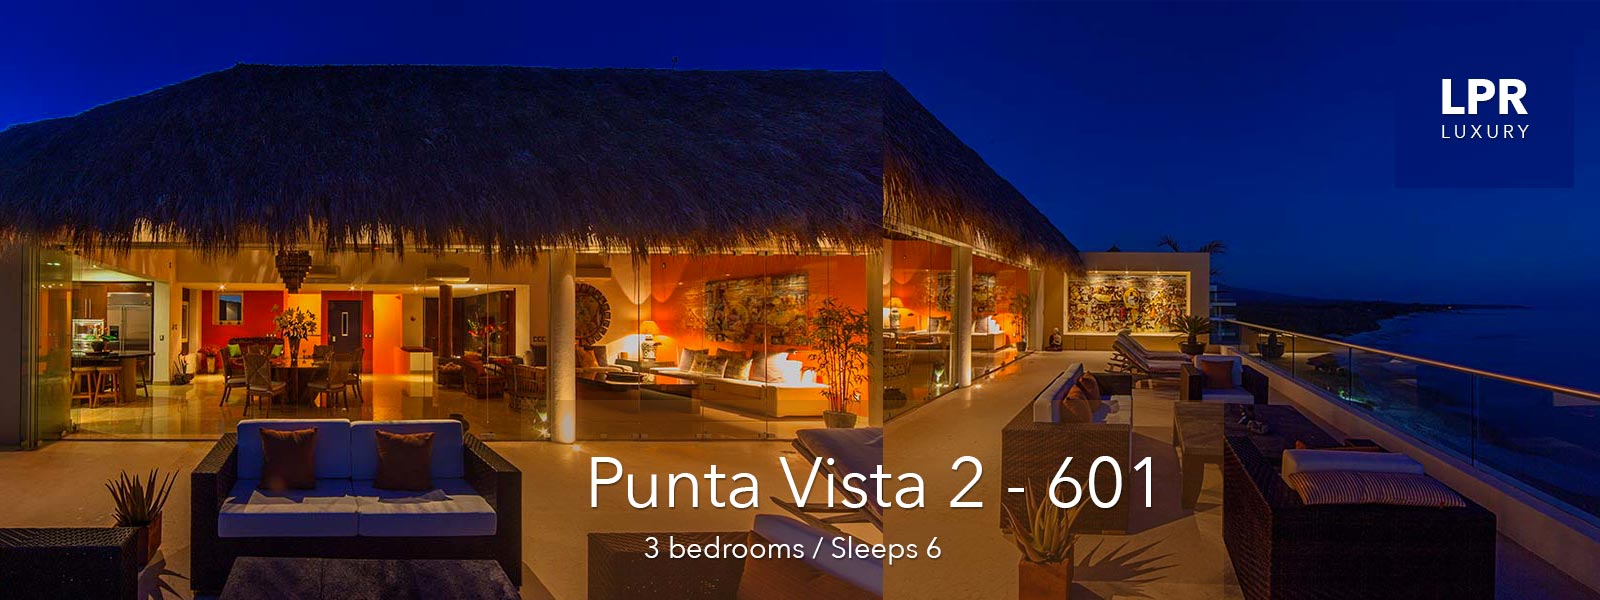 Punta Vista 2 - Penthouse 601 - Playa Punta de Mita - Condos for Sale